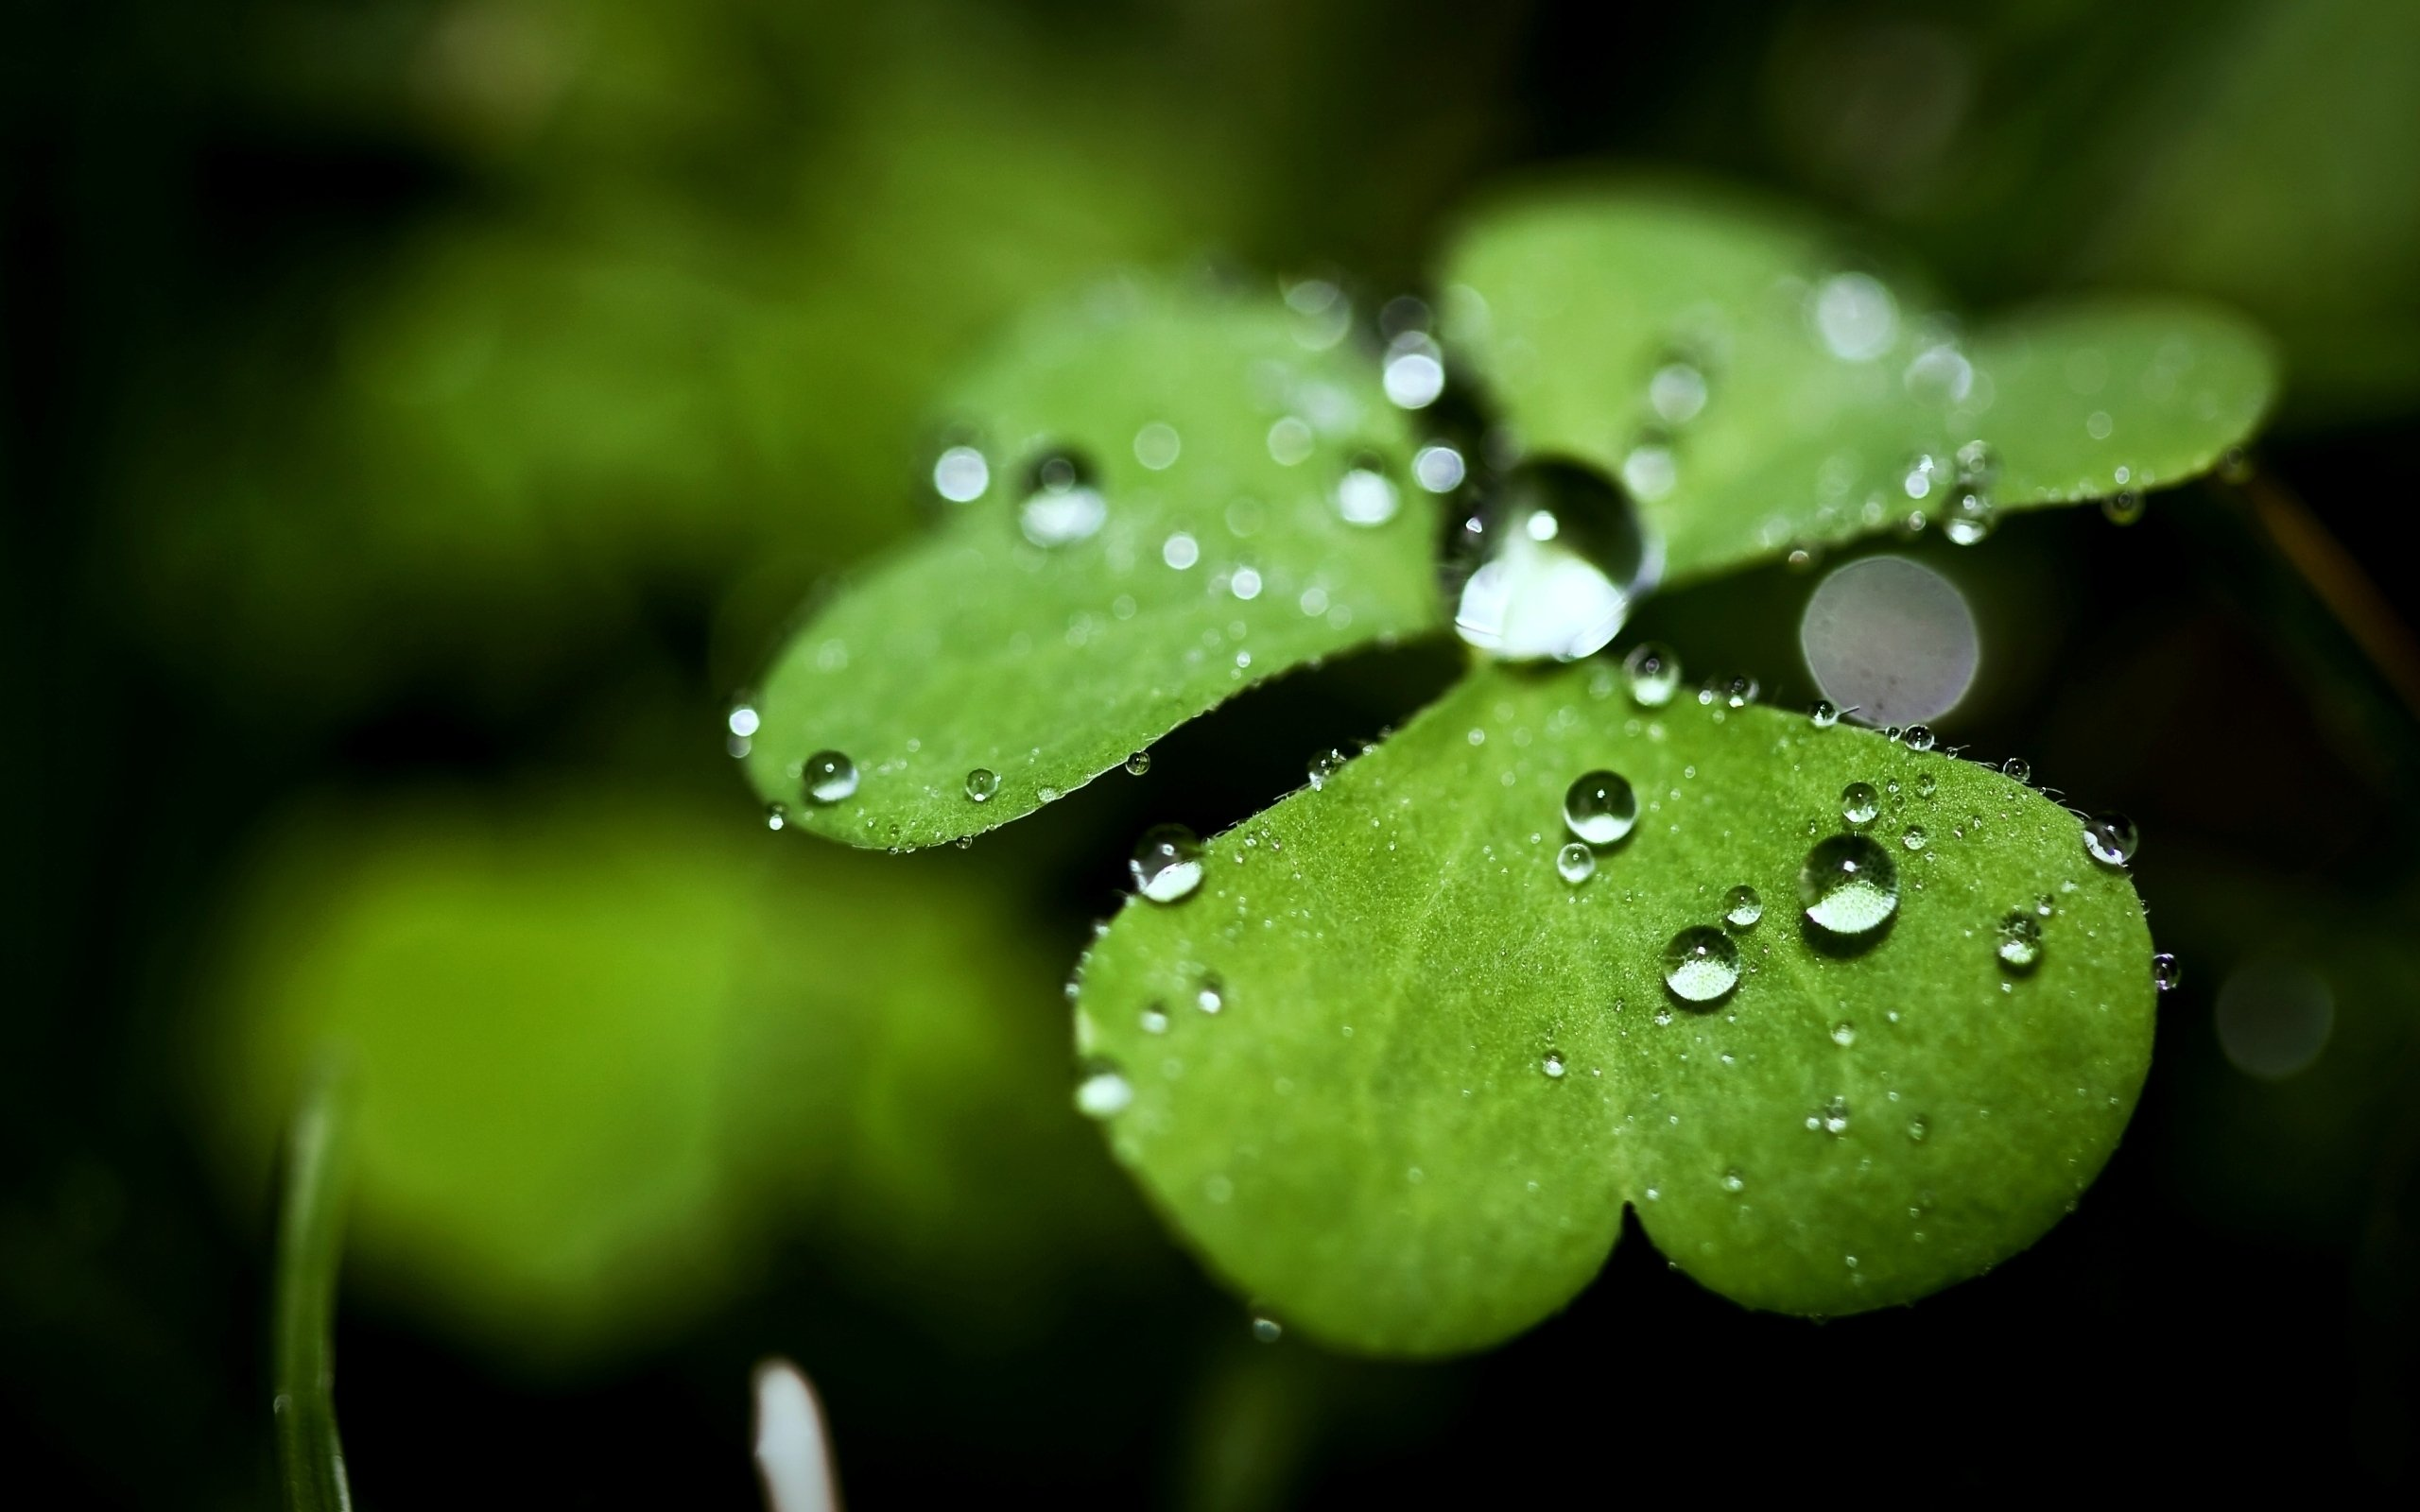 Rostock wallpaper clover drops of dew drops Wallpapers 3d for desktop 2560x1600